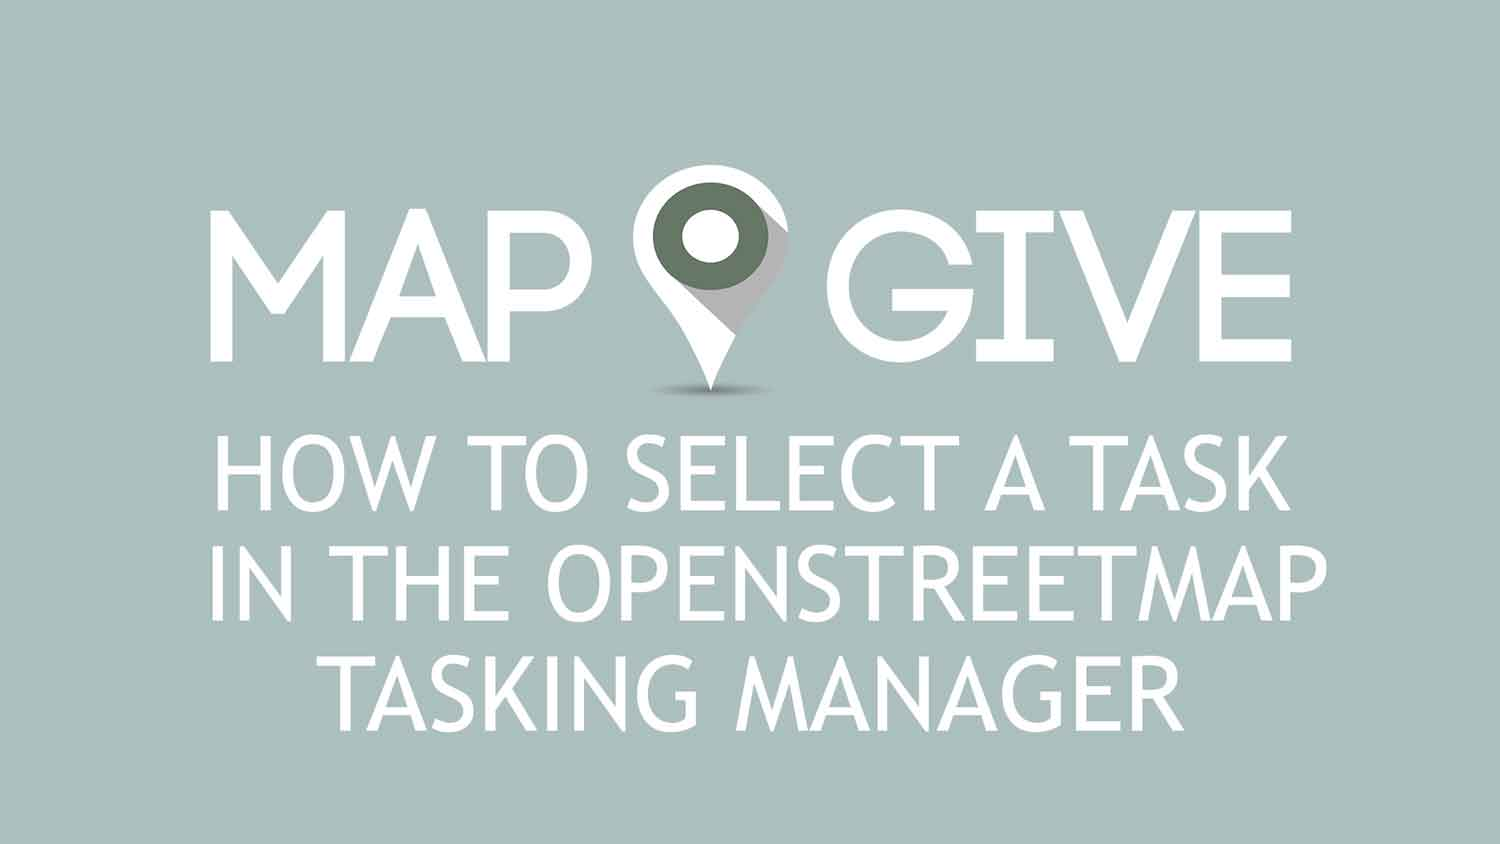 YouTube embedded video: How to Select a Project in the OpenStreetMap Tasking Manager. Press space or enter to play video.